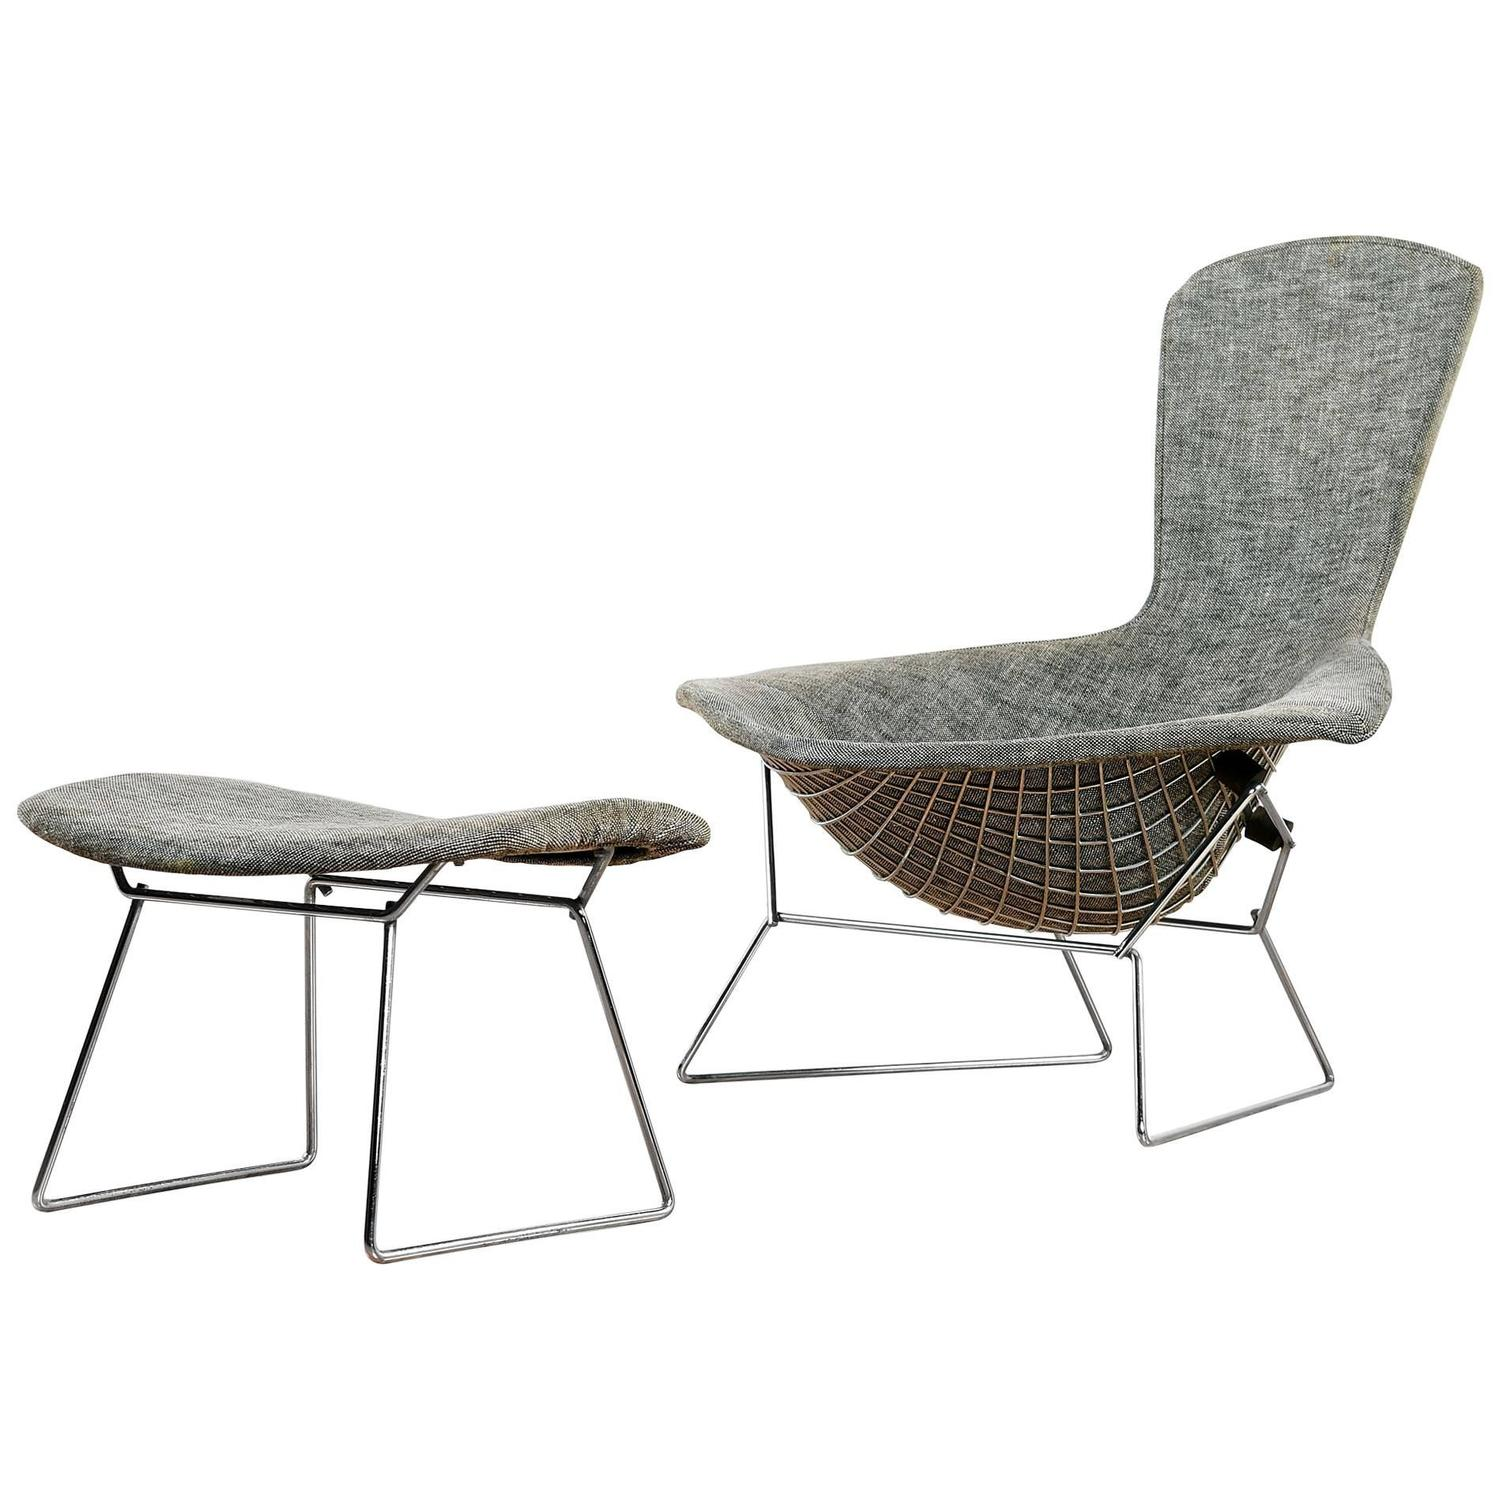 Authentic Vintage Harry Bertoia For Knoll Bird Chair And